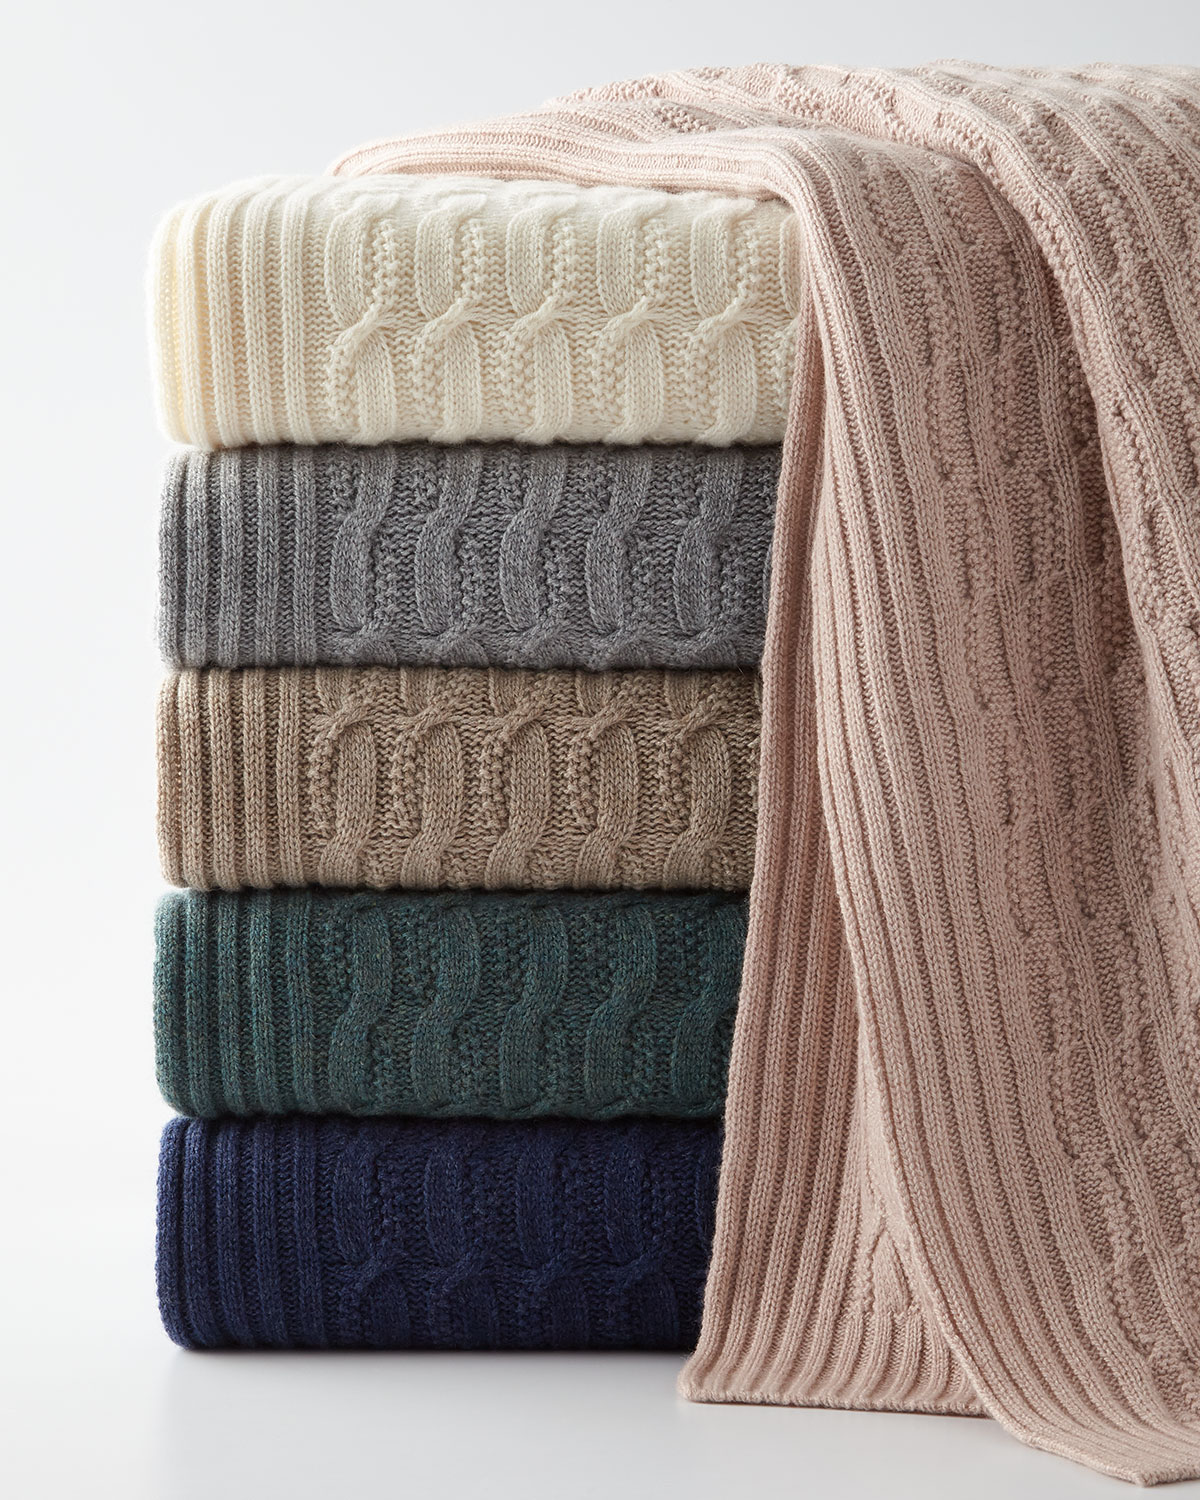 Sofia Cashmere Seed - Stitch Cable Throw